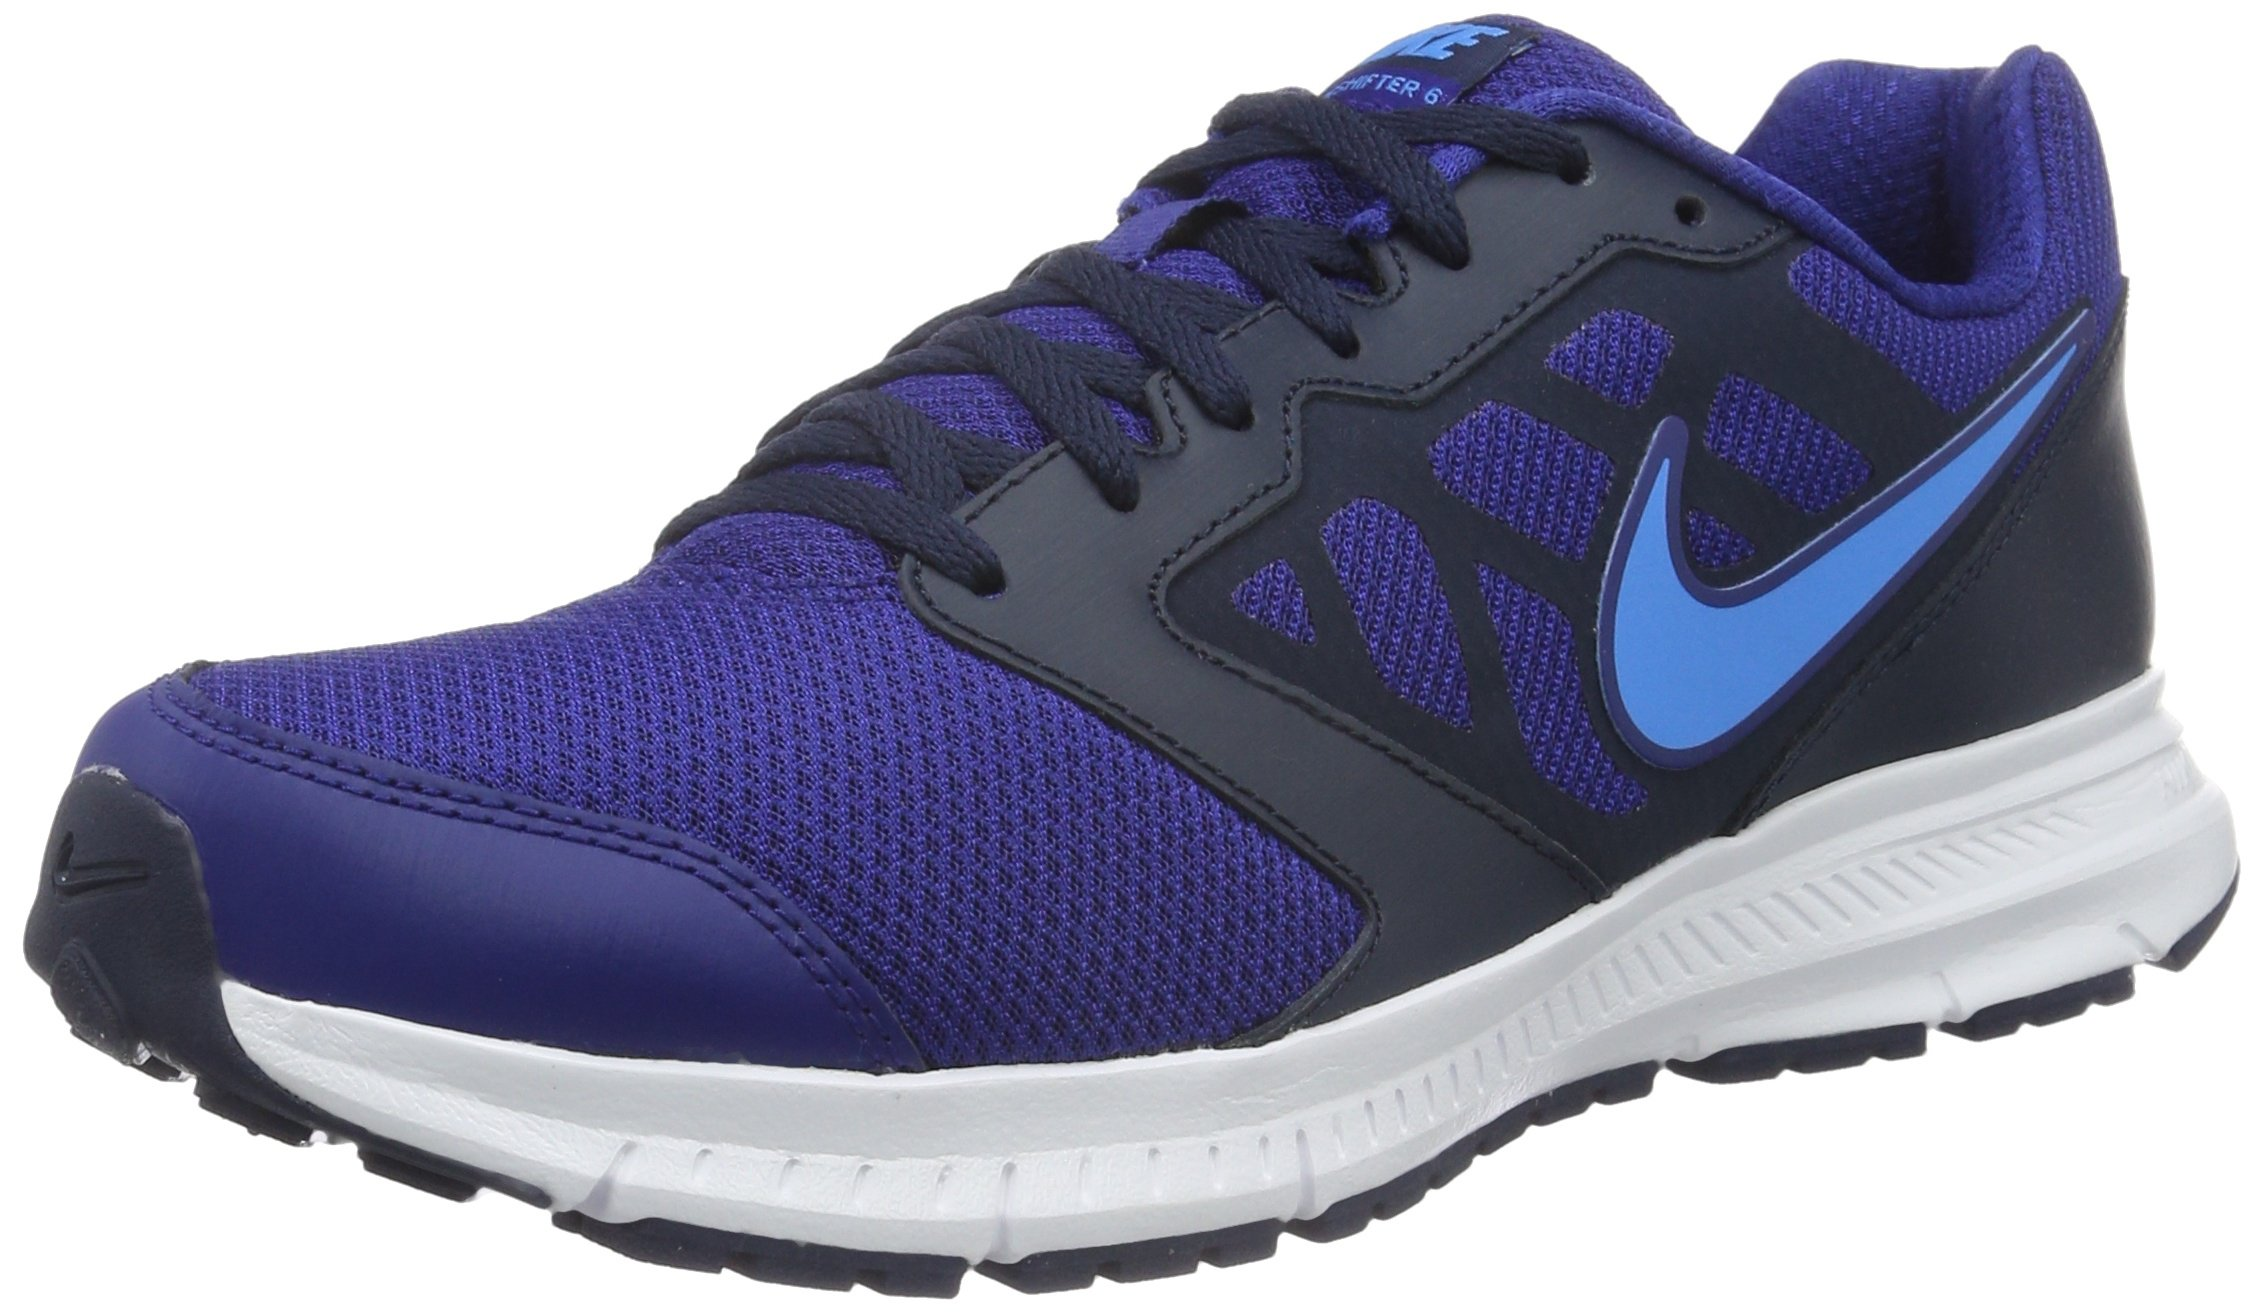 9bae7832390ce NIKE Mens Downshifter 6 Running Shoes, Deep Royal Blue Size 13 M US